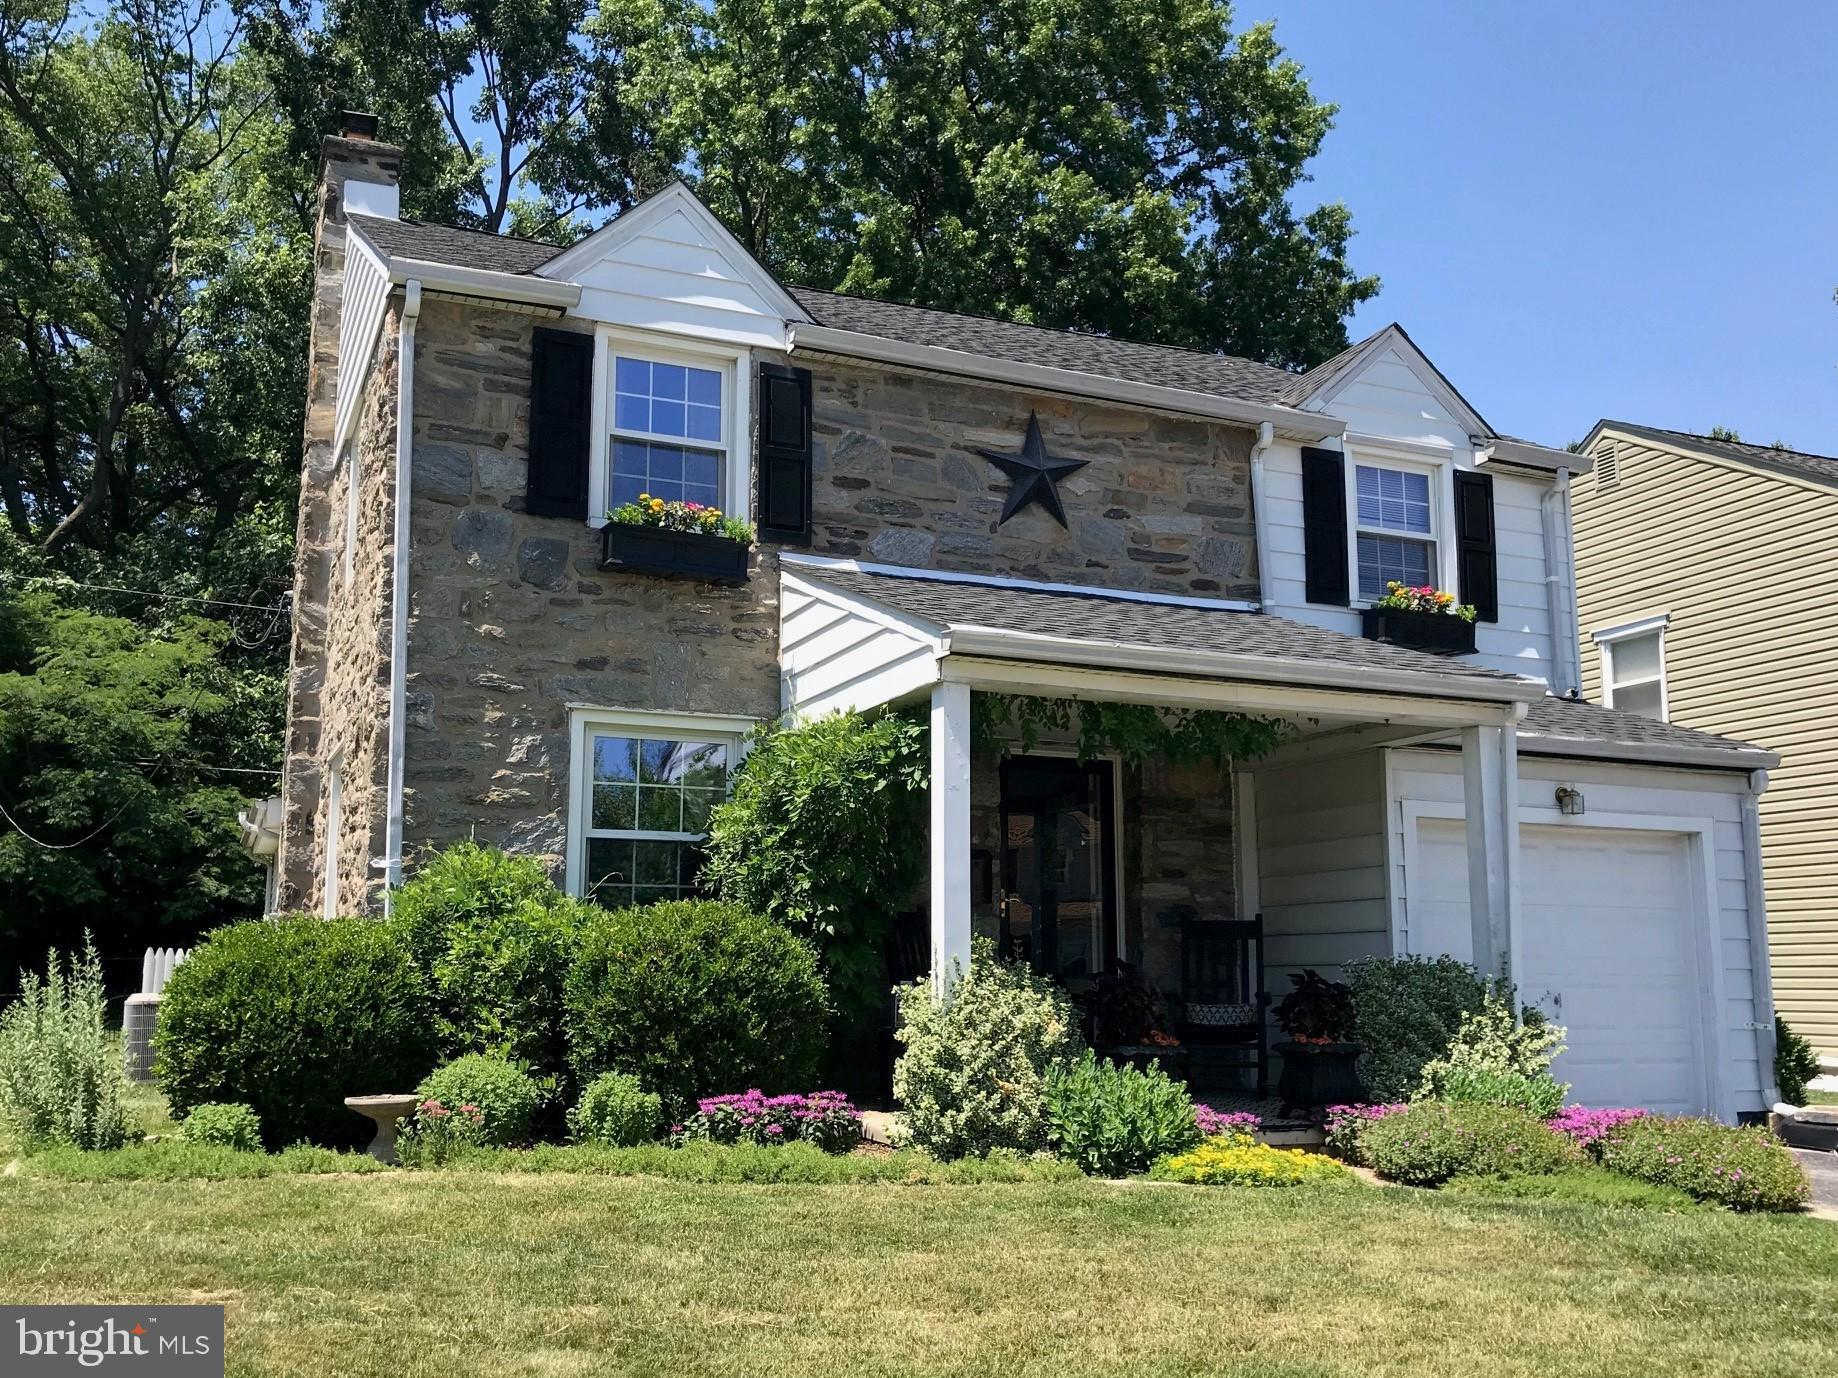 456 MAPLEWOOD ROAD, SPRINGFIELD, PA 19064